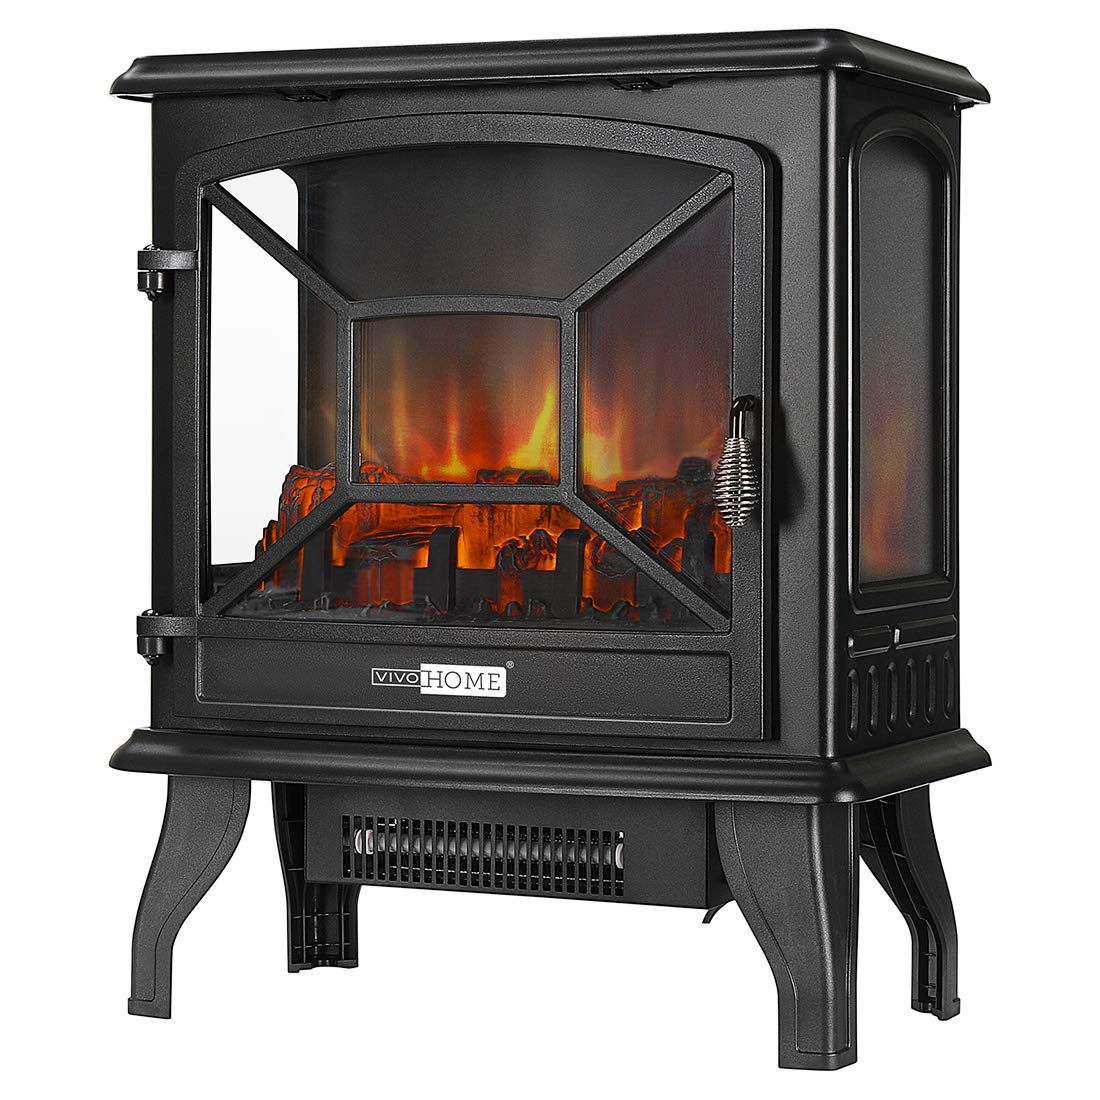 VIVOHOME 23 Inch 1400W Portable Free Standing Electric Fireplace Stove Heater with Realistic Log Flame Effect